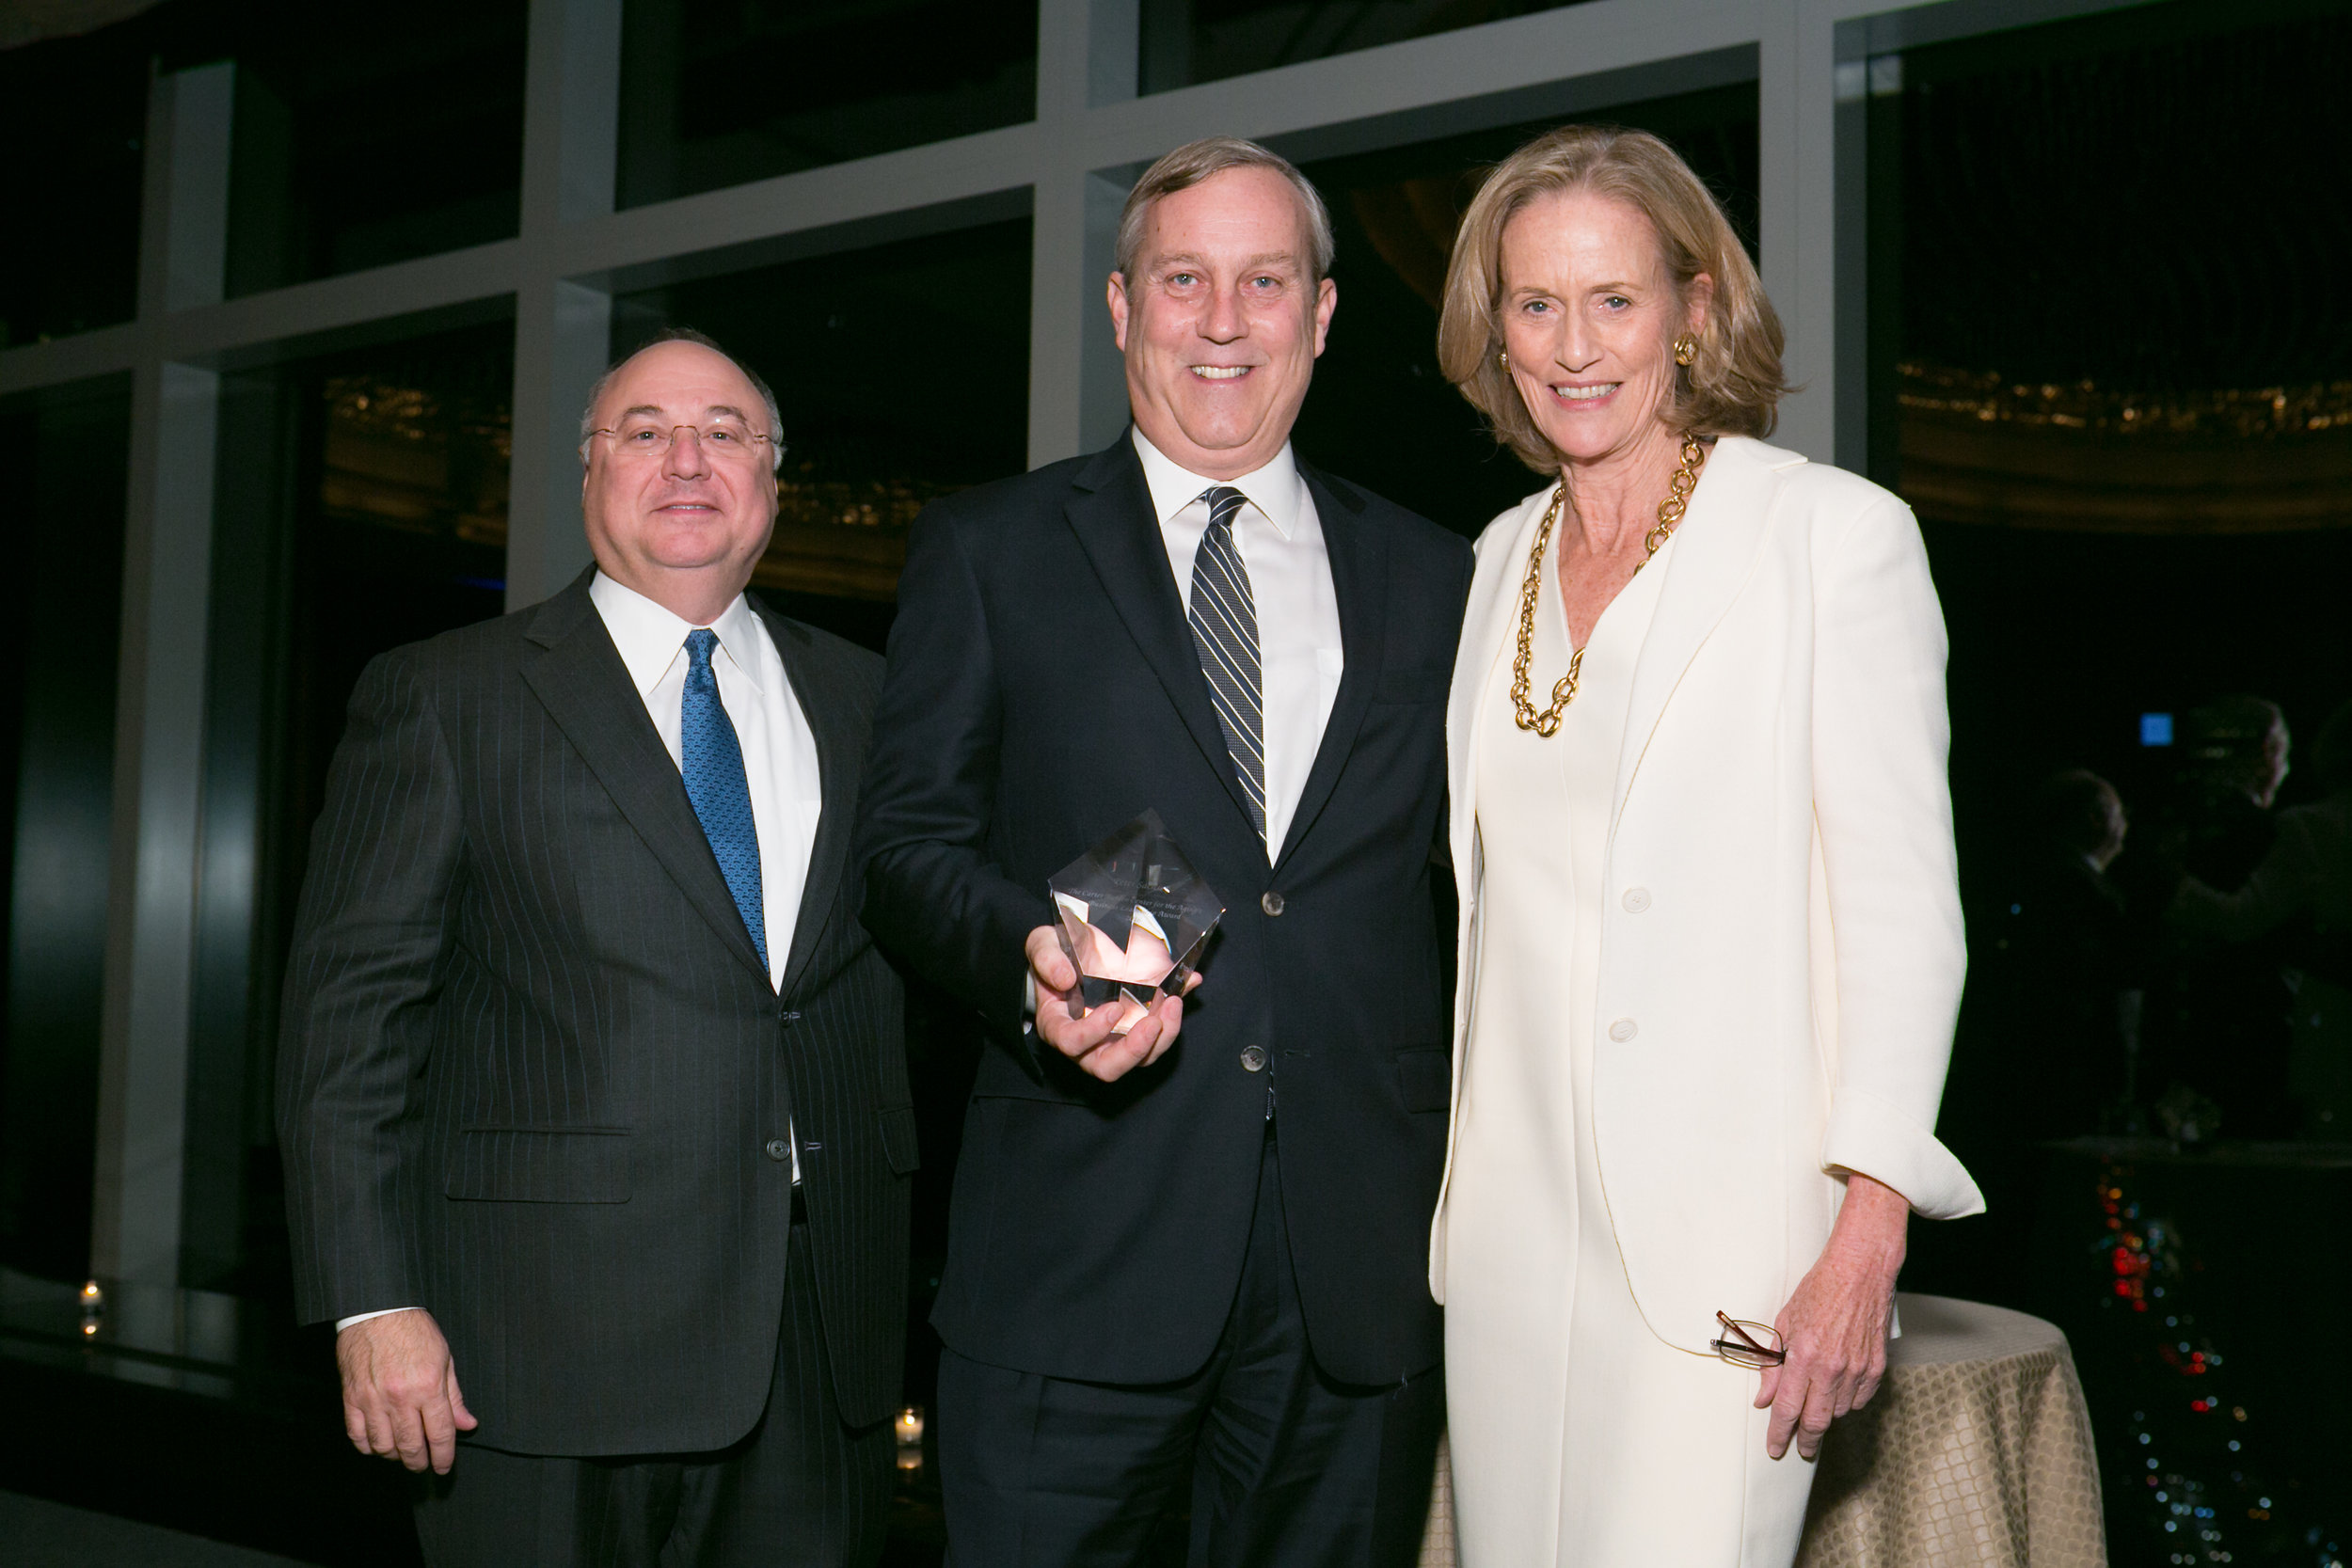 Peter Sachse   , Chief Growth Officer, Macy's, 2016 Business Leadership Honoree accepting his award from  Jeffrey A. Weber , Board Chairman, Carter Burden Network and  Susan L. Burden , Board Member, Carter Burden Network